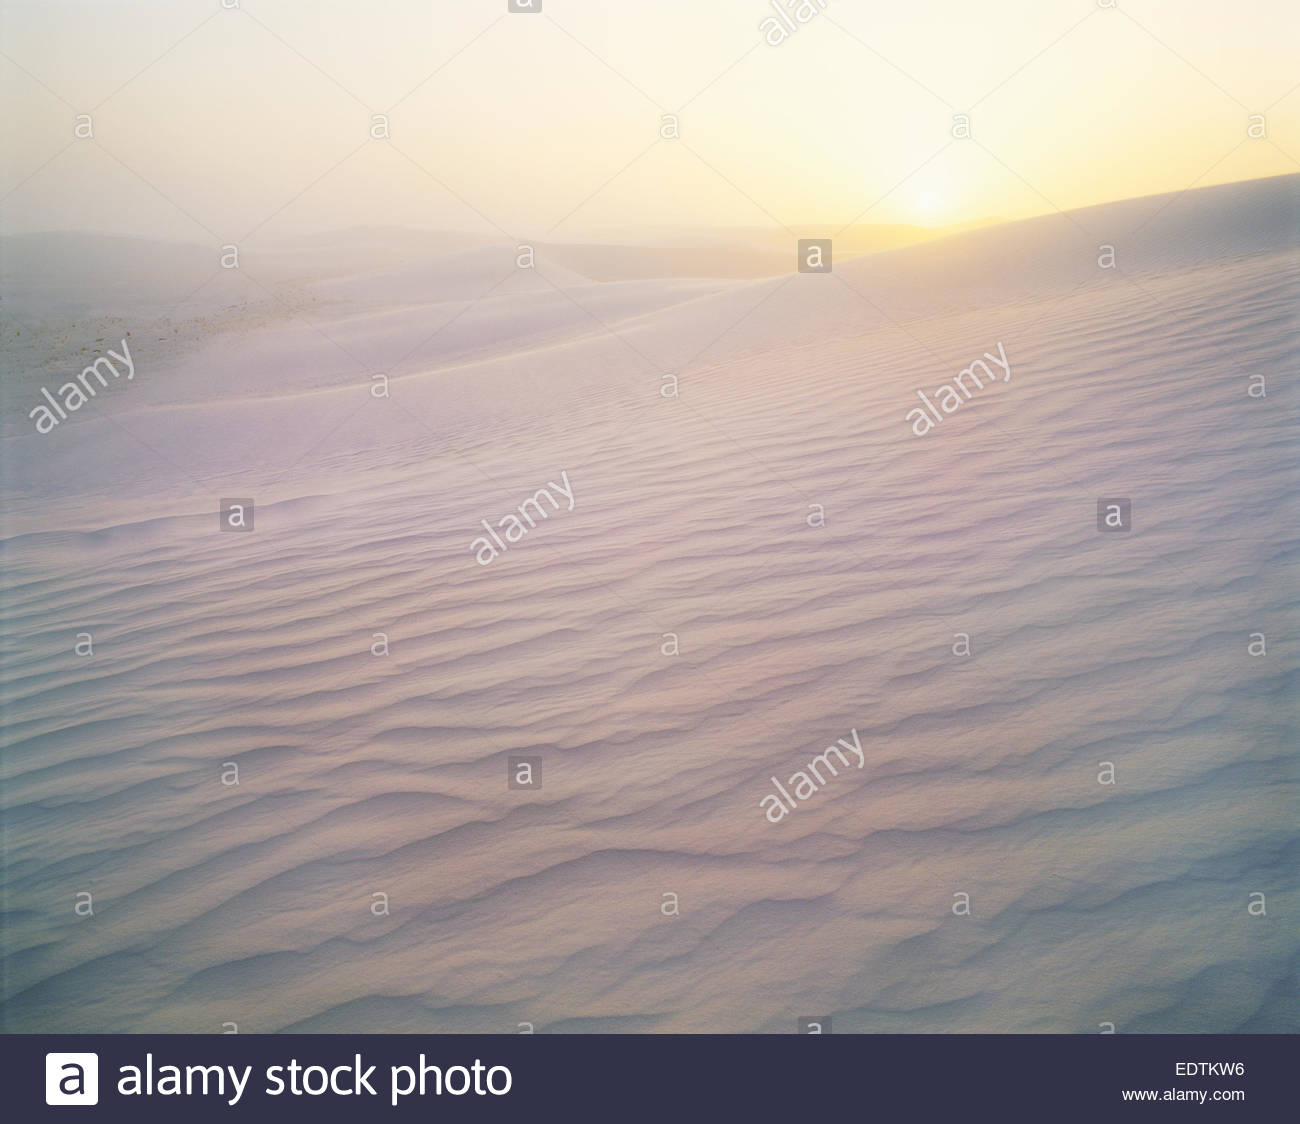 Starke Winde über Gips Dünen bei Sonnenaufgang.  White Sands National Monument, New Mexico. Stockfoto